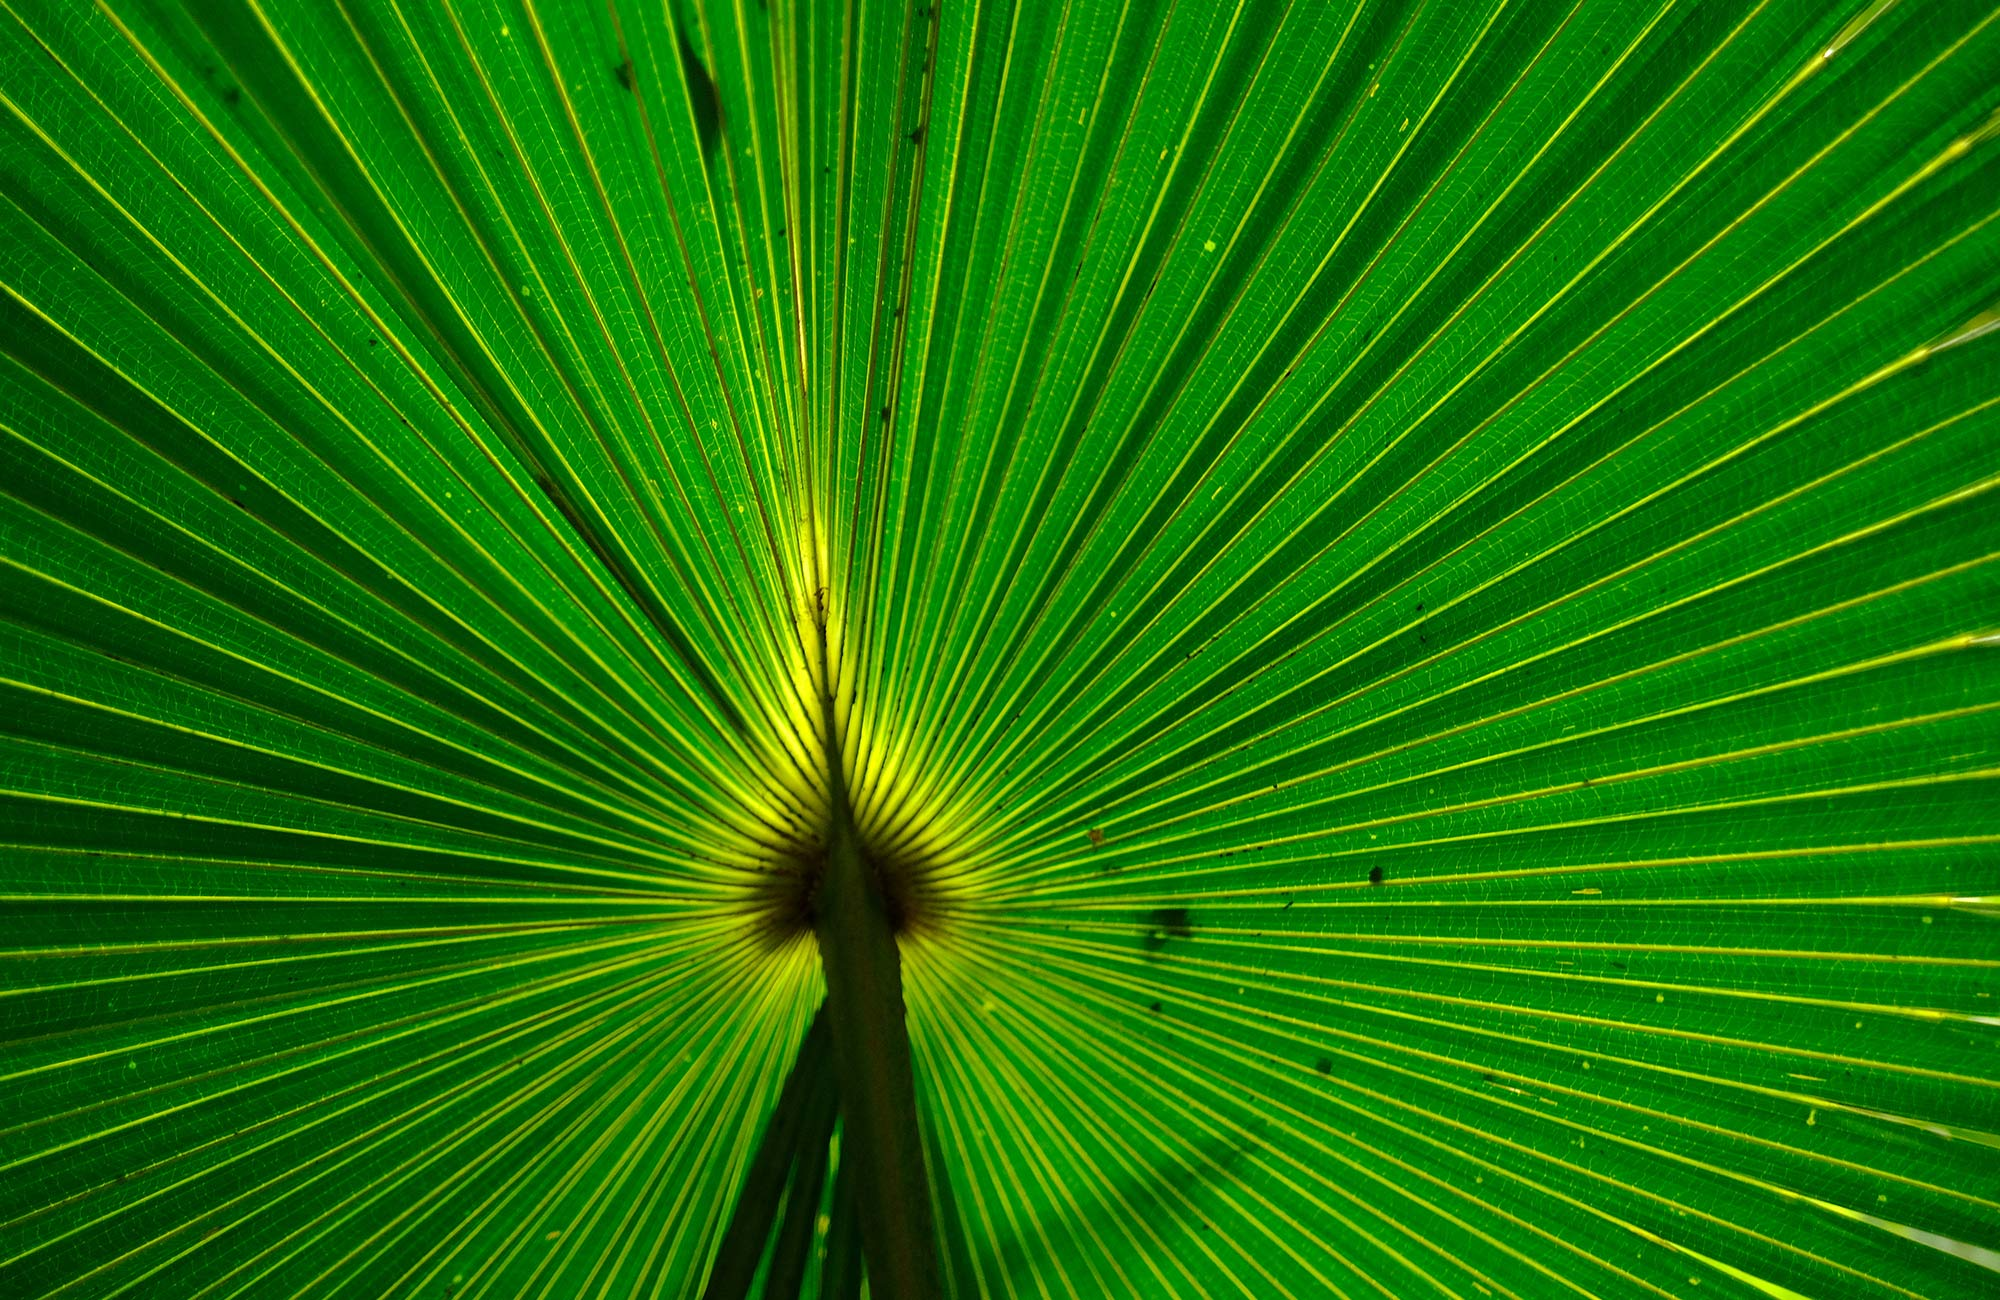 Close-up image of a cabbage palm leaf, Budderoo National Park. Photo credit: Elinor Sheargold © DPIE